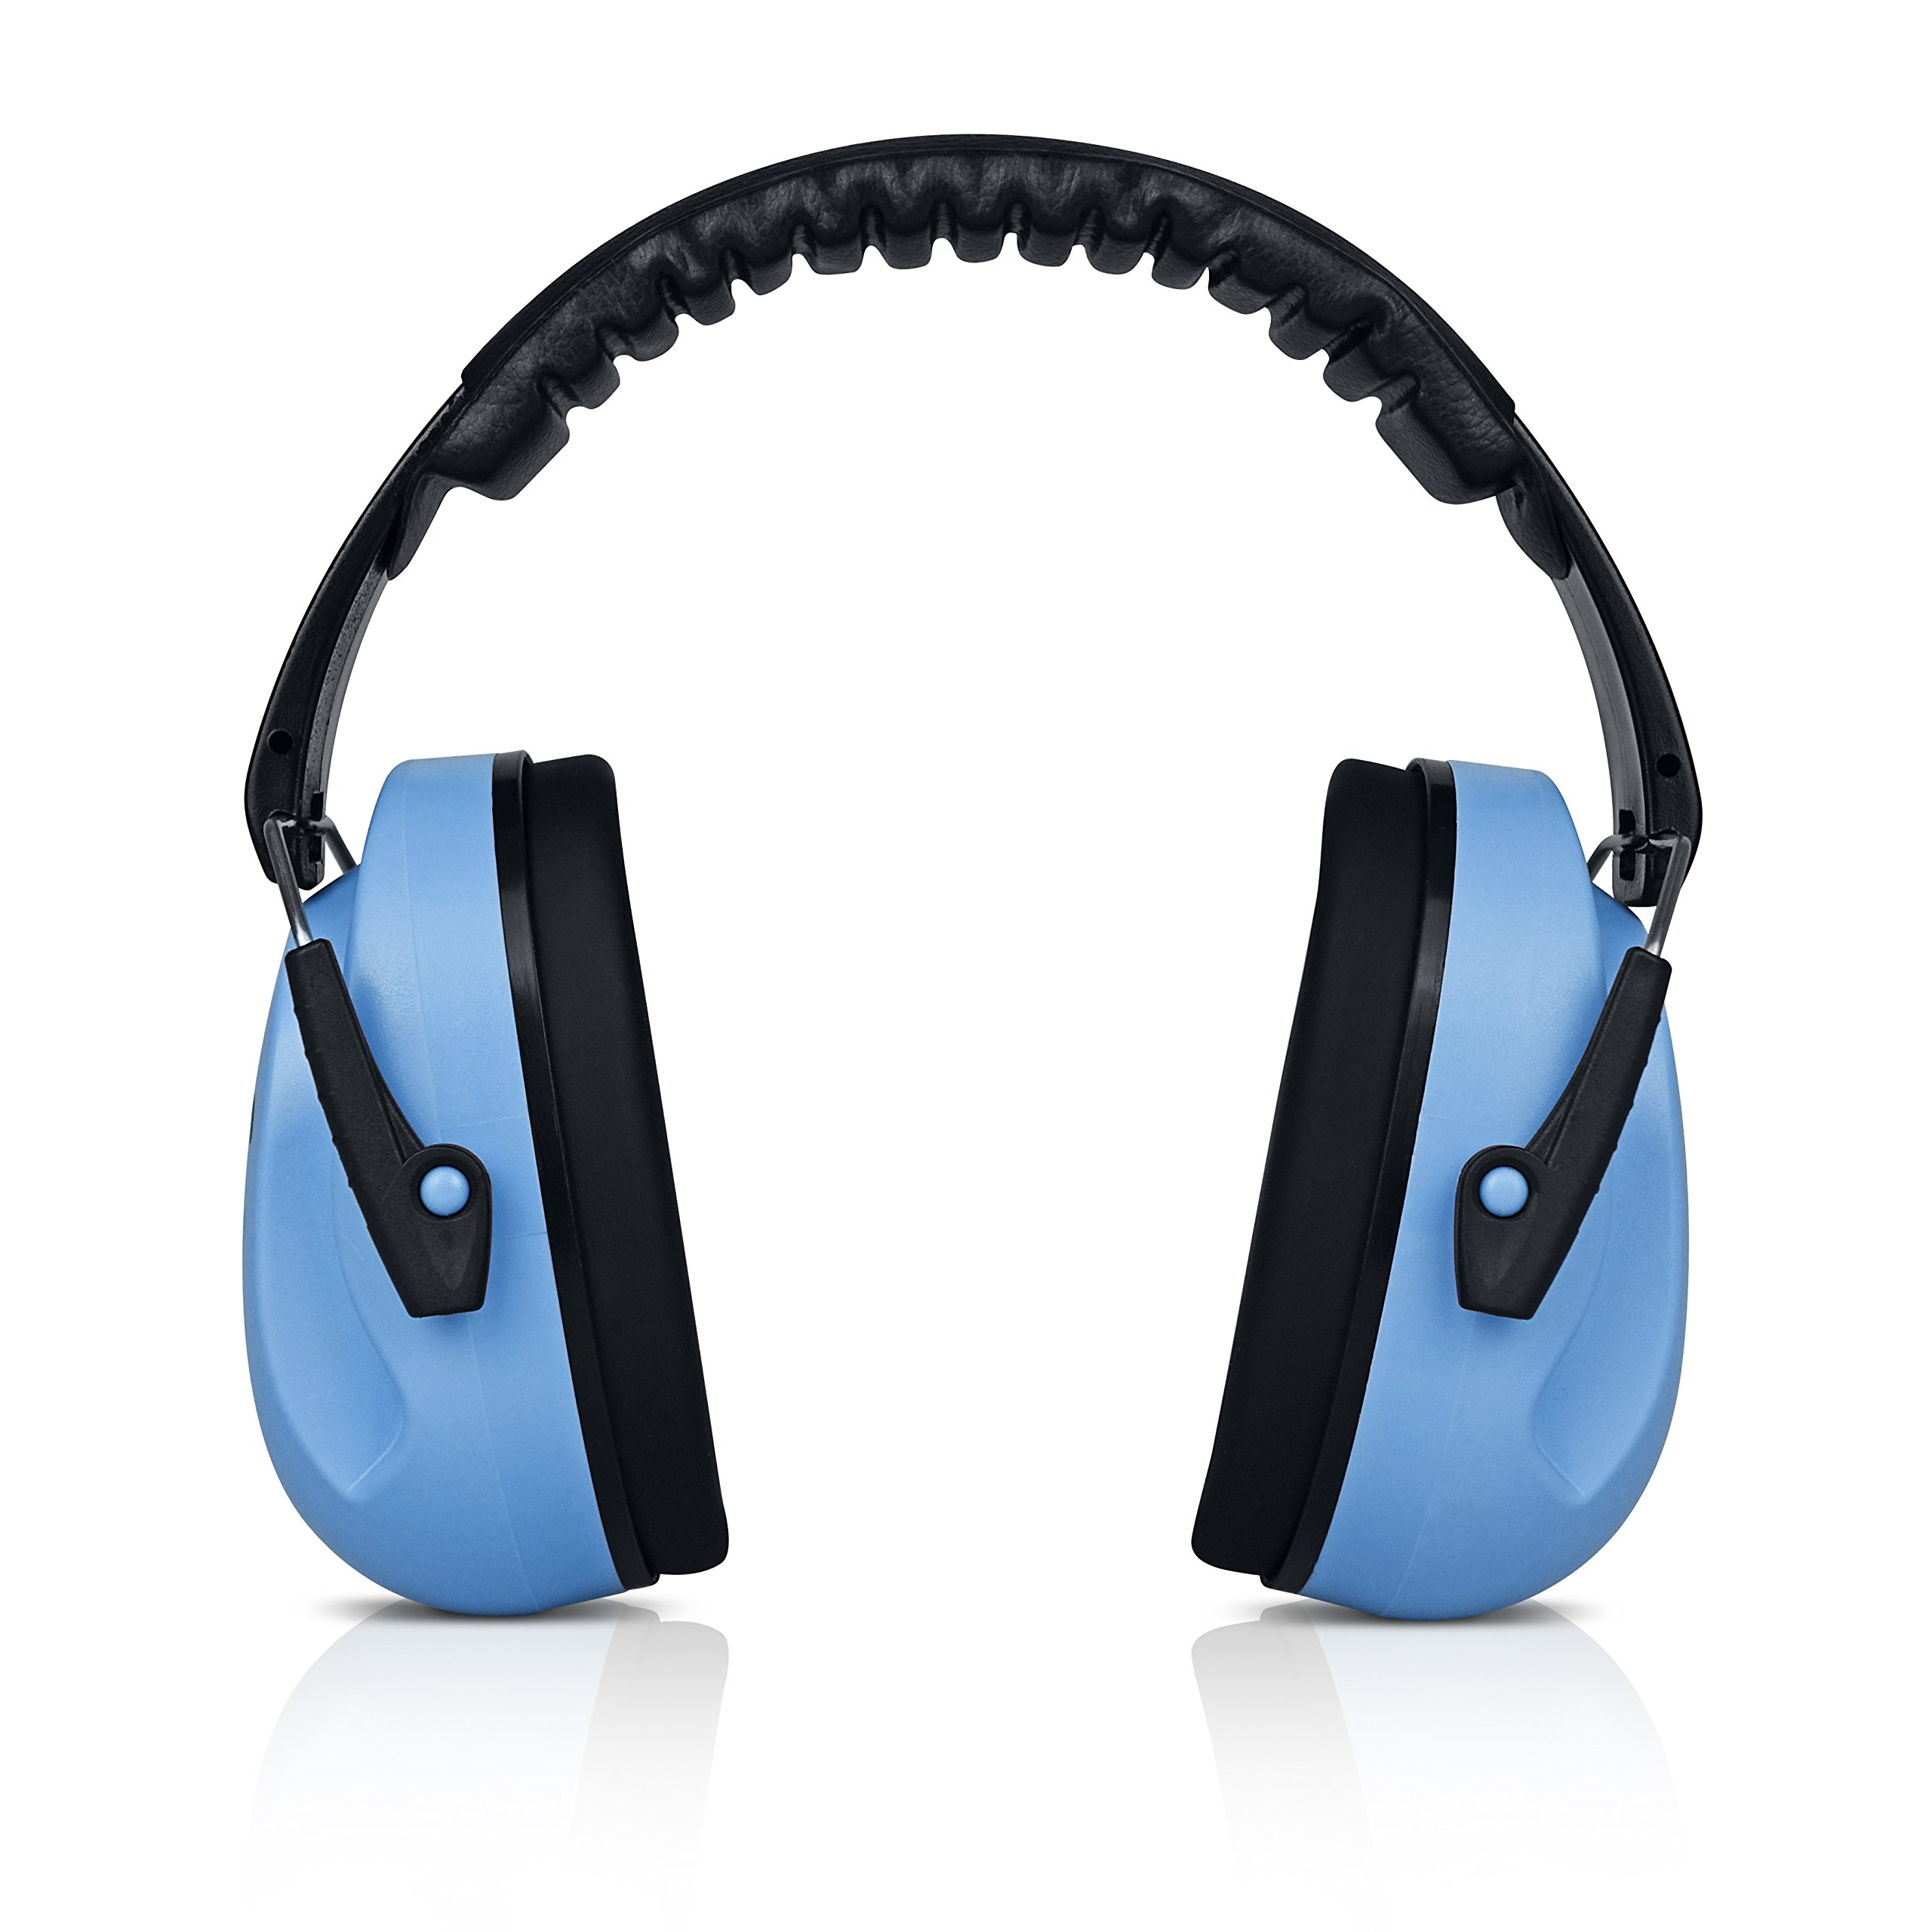 HearTek Kids Ear Protection Noise Reduction Children Protective Earmuffs - Sound Cancelling Hearing Muffs for Toddler, Baby, Infants - Adjustable, Foldable with Travel Bag - Blue